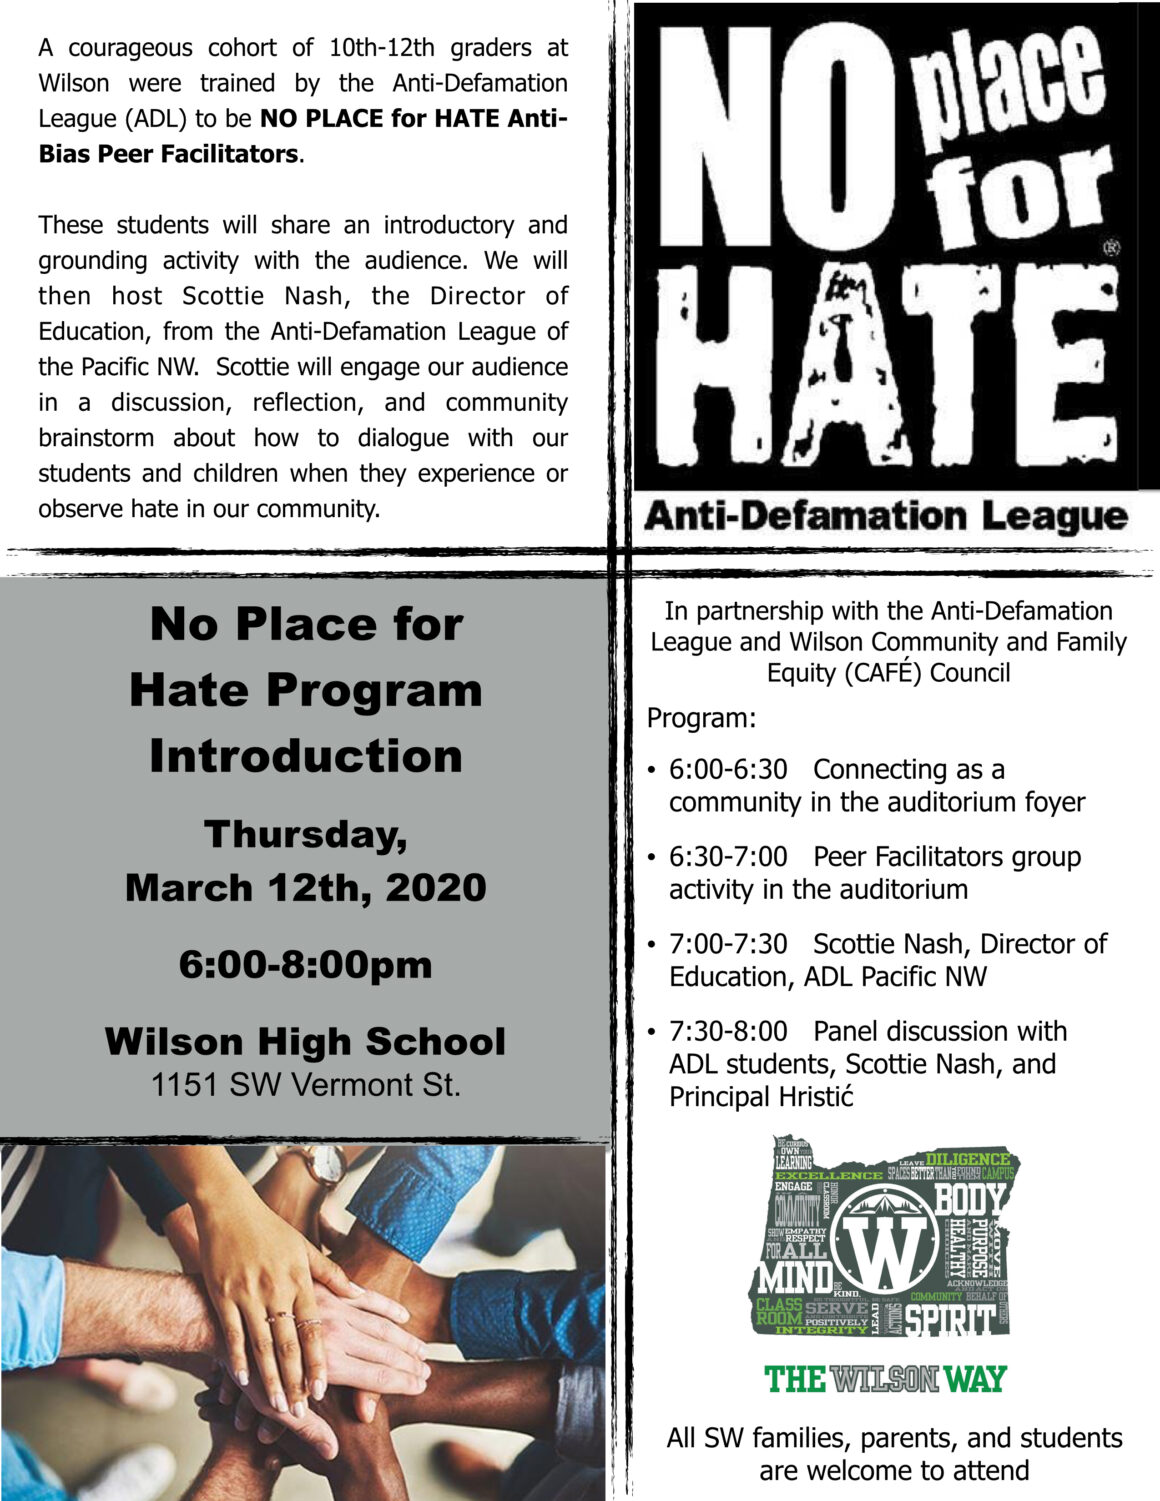 No Place for Hate Program Introduction @ Wilson High School